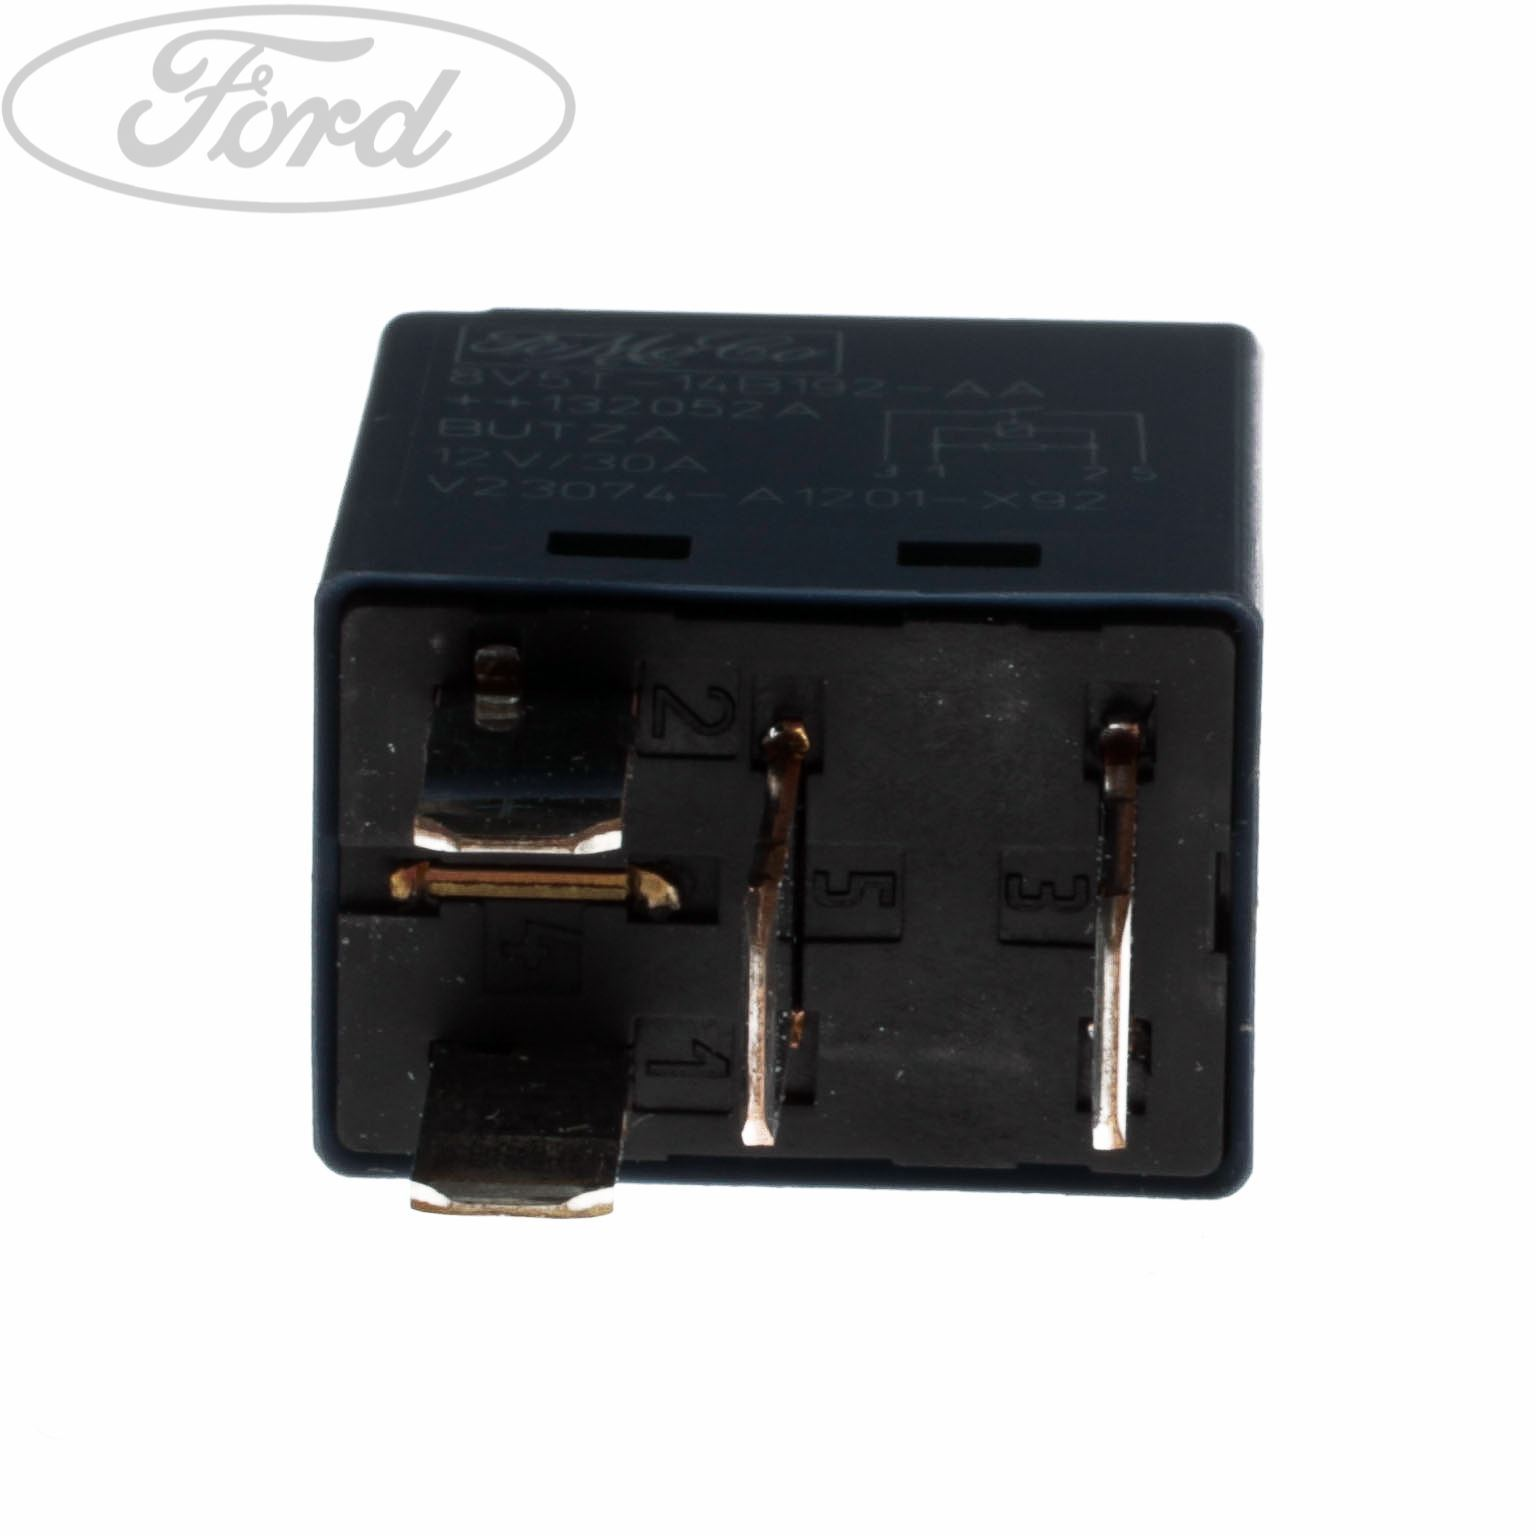 hight resolution of details about genuine ford fiesta mk7 starter motor relay 30 amp 4 blade micro tyco 1667949